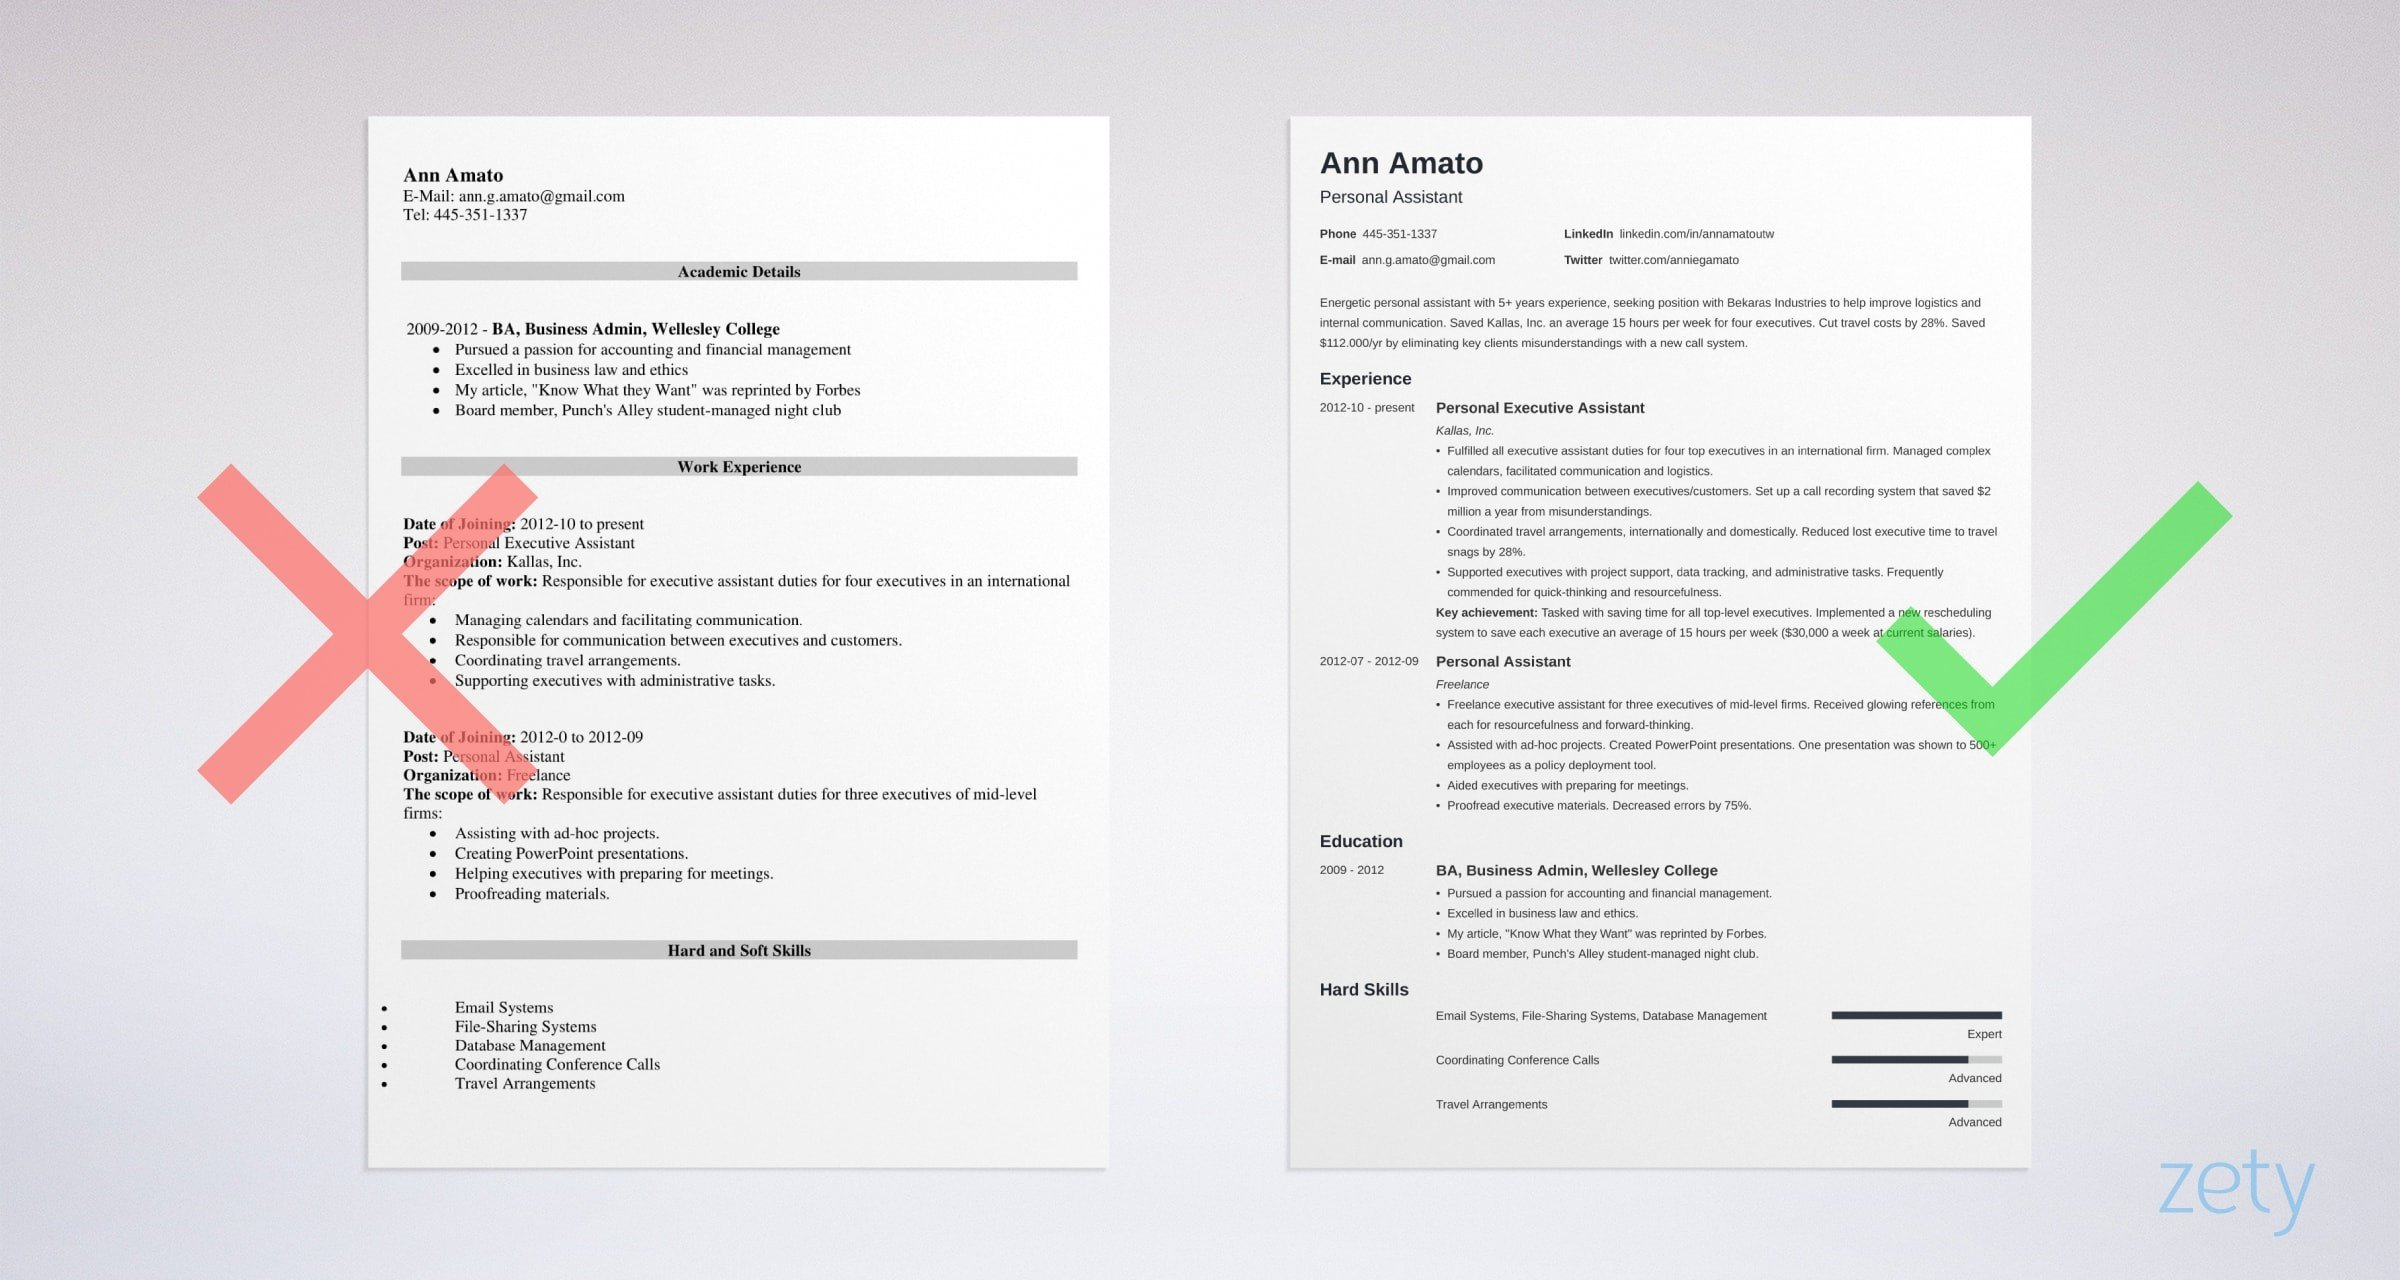 Resume Format: Samples and Templates for all Types of Resumes (10+)